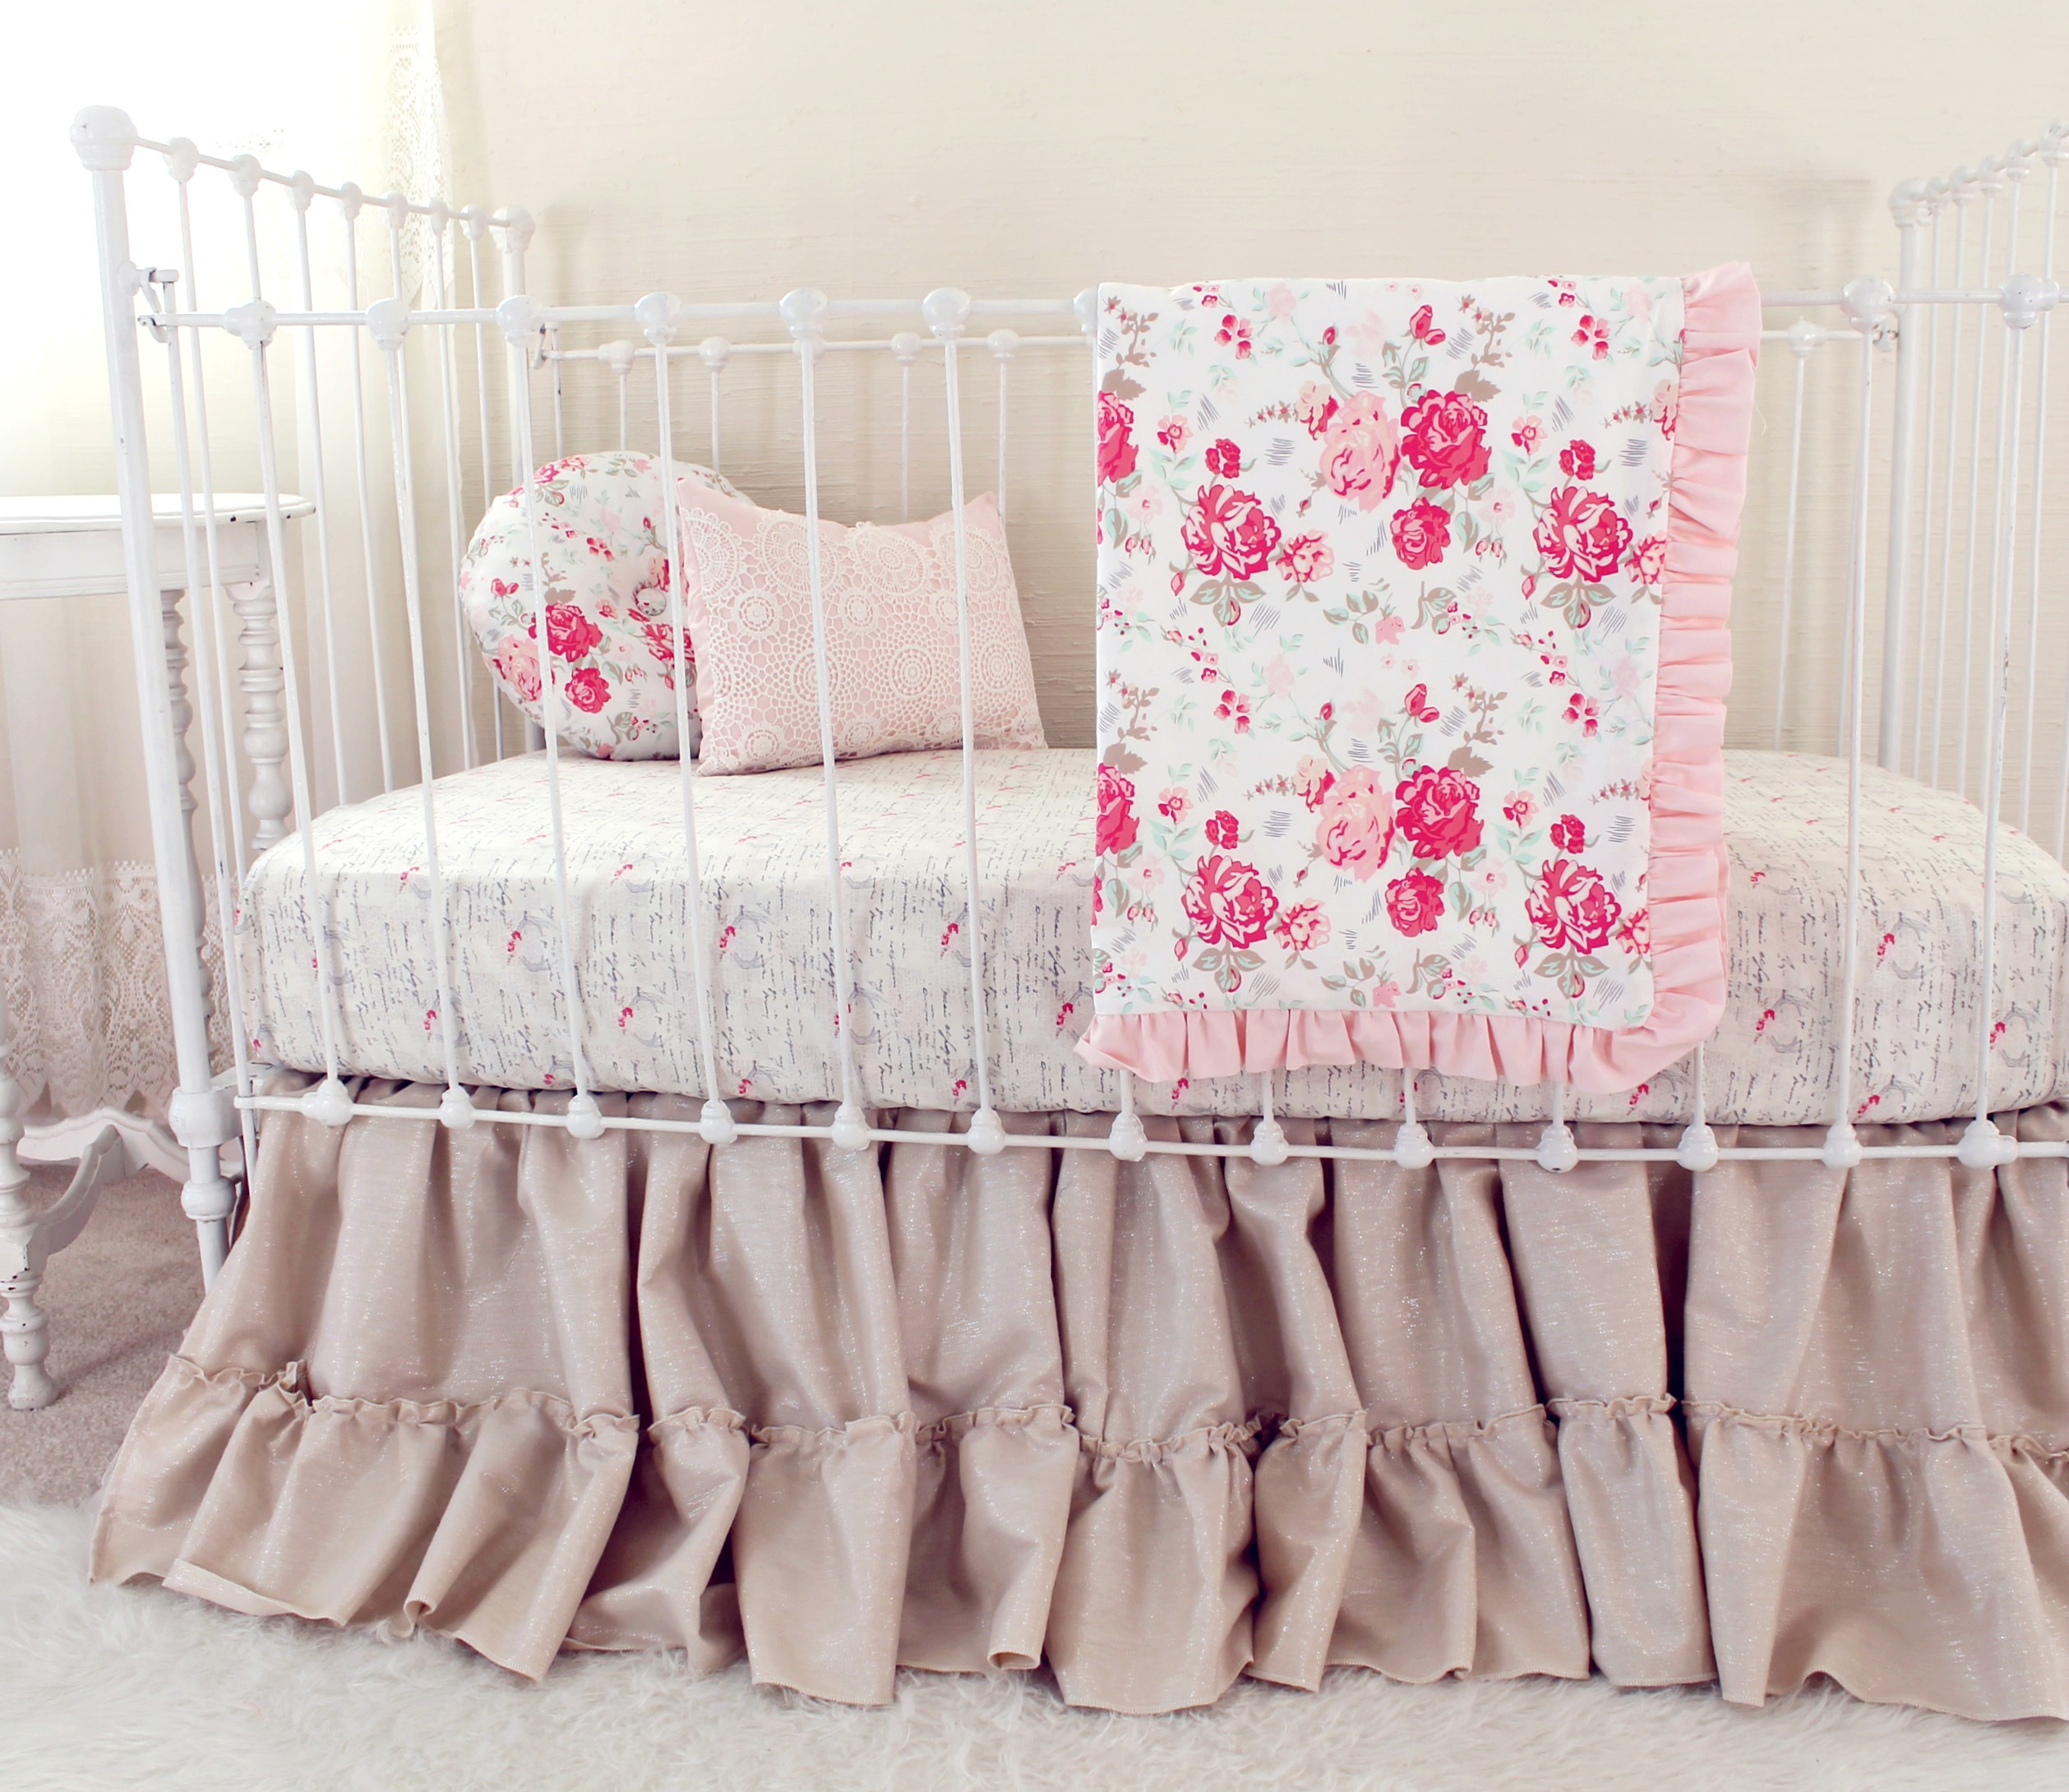 nell in been hills that liz bed a of bedding looks on fan she wow northeast s farm you would beds have raised to kansas vintage designer